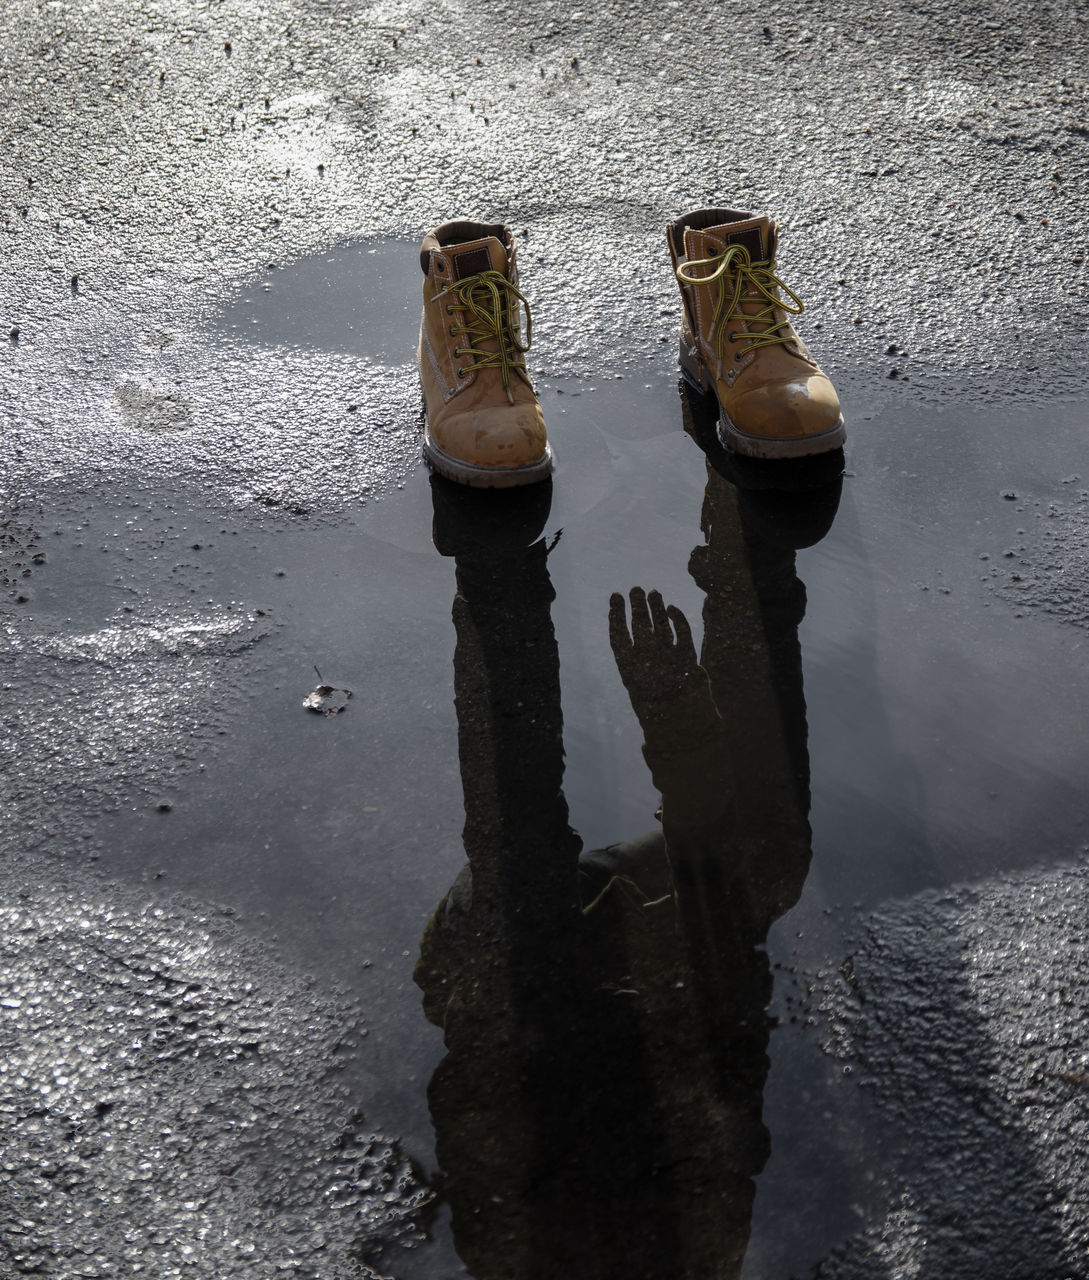 HIGH ANGLE VIEW OF SHOES ON WET LAND